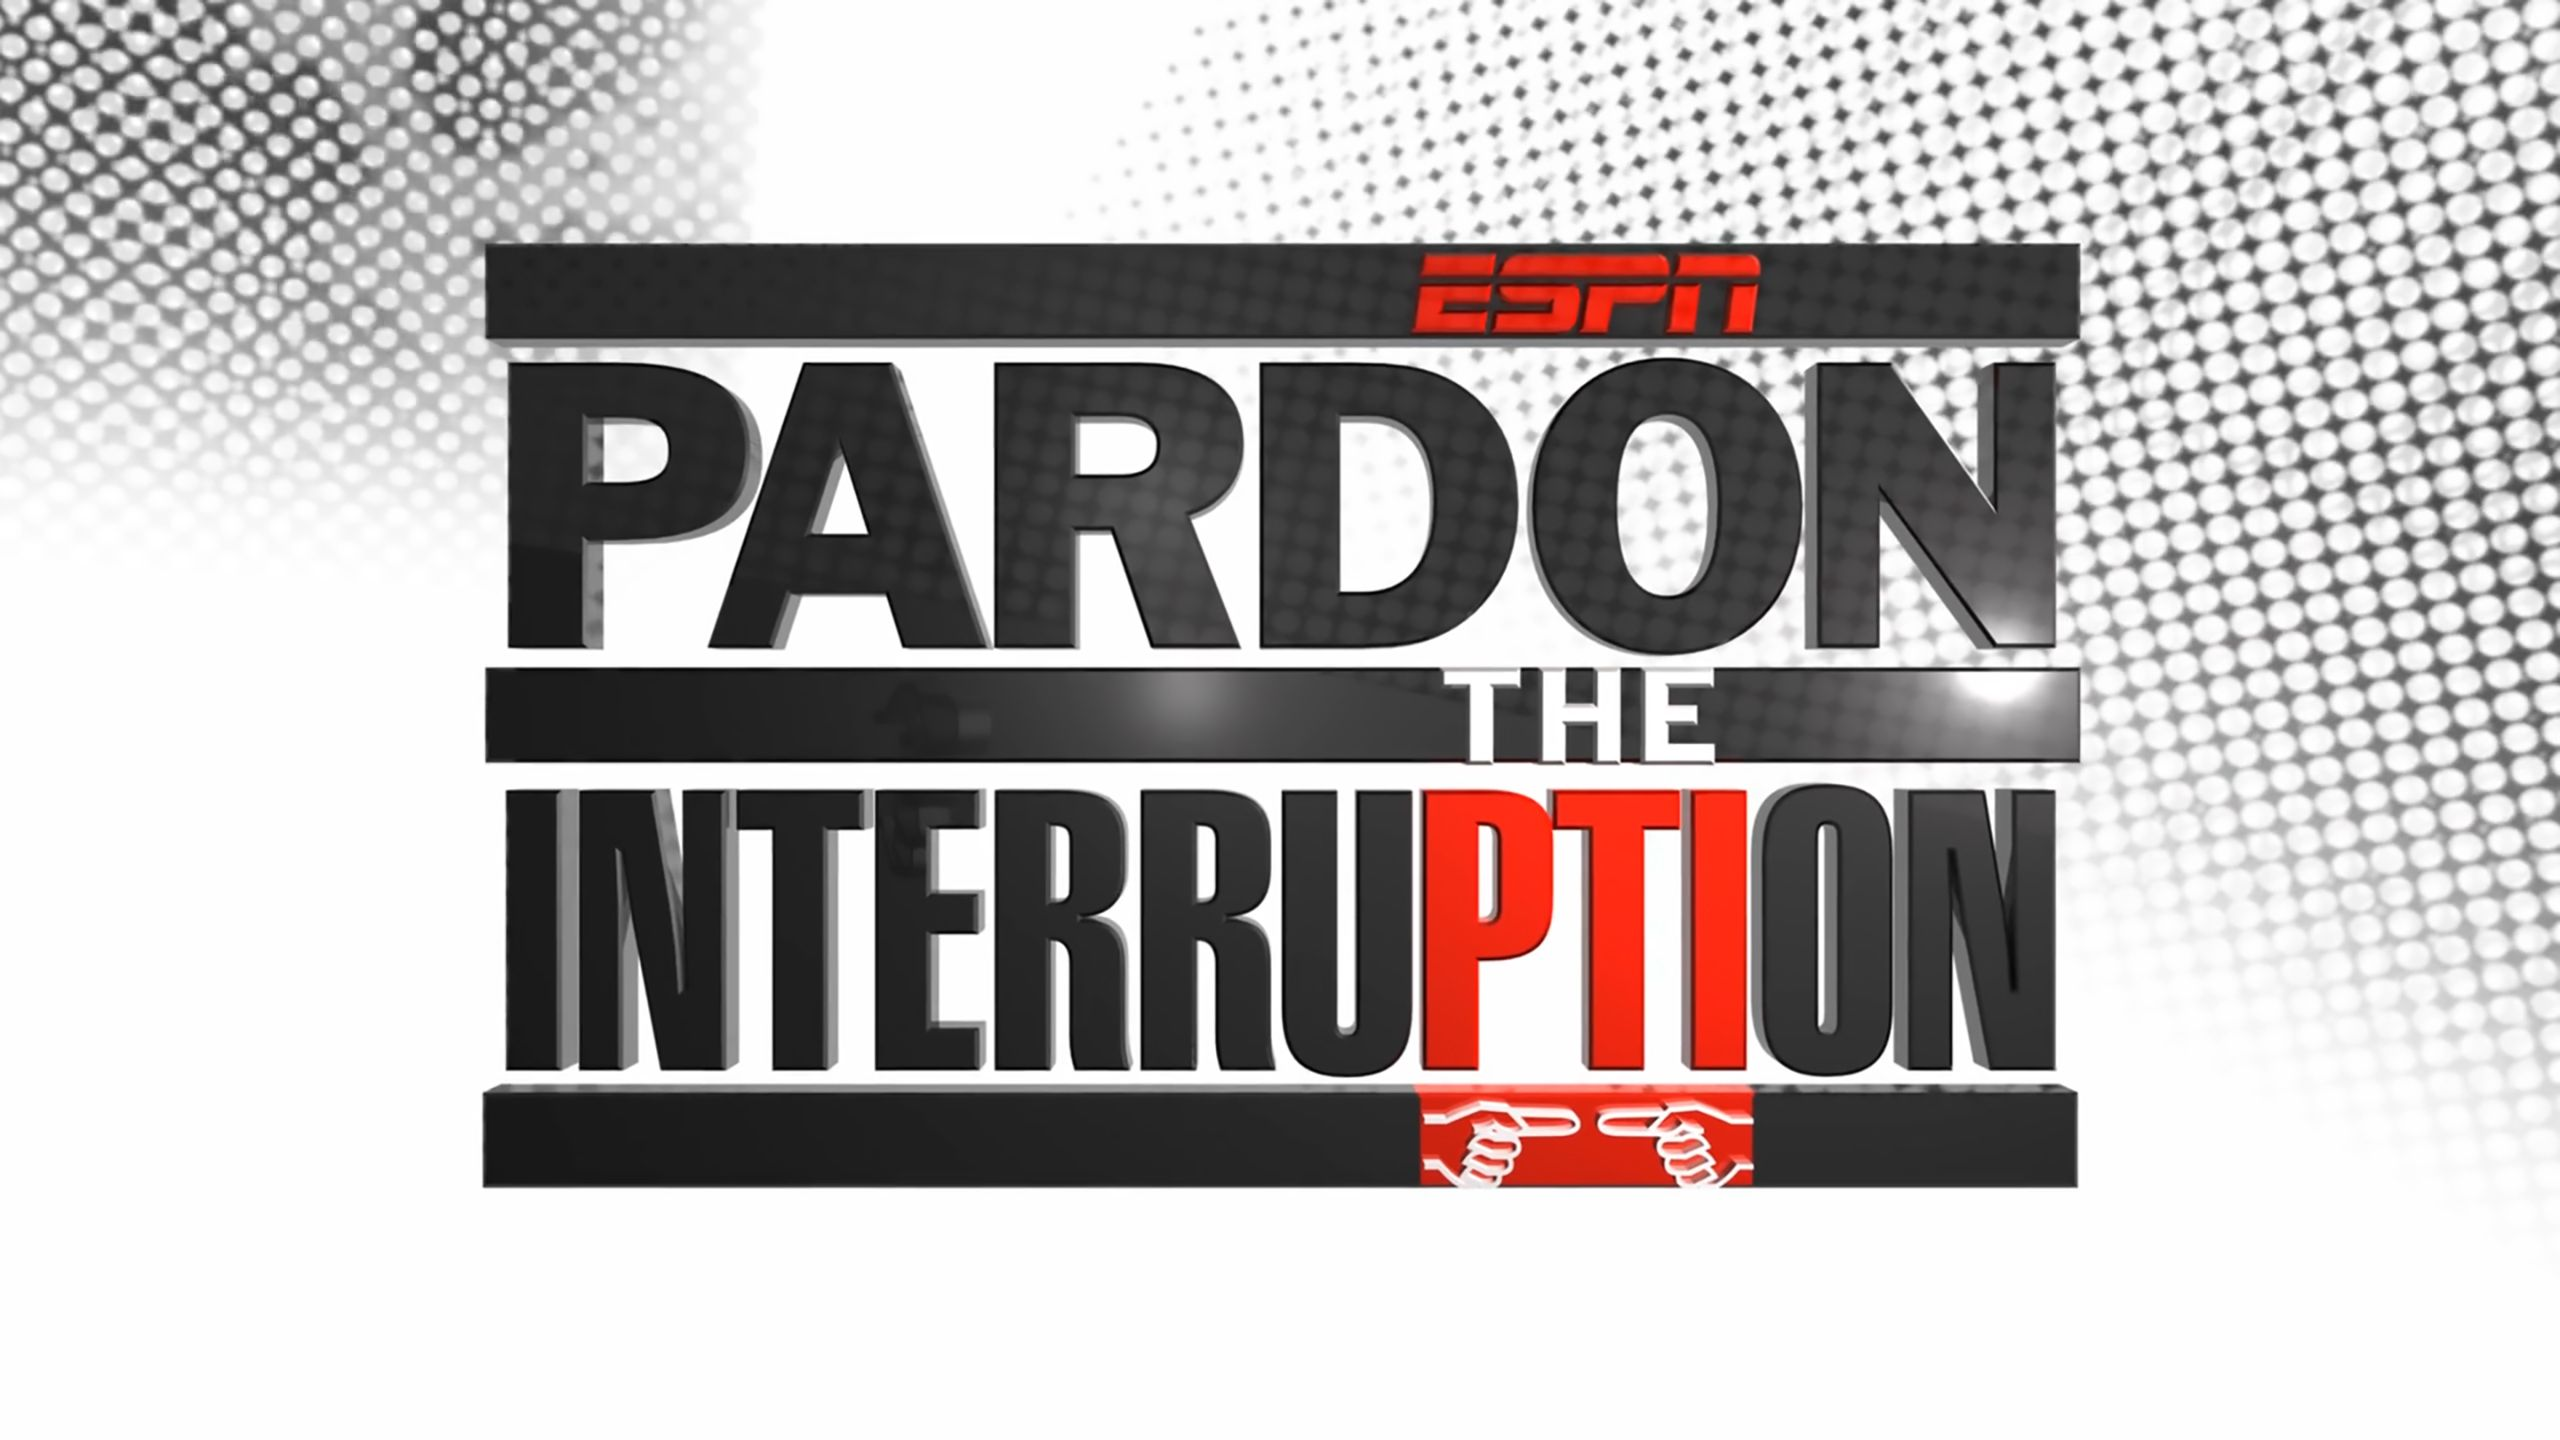 Mon, 1/15 - Pardon The Interruption